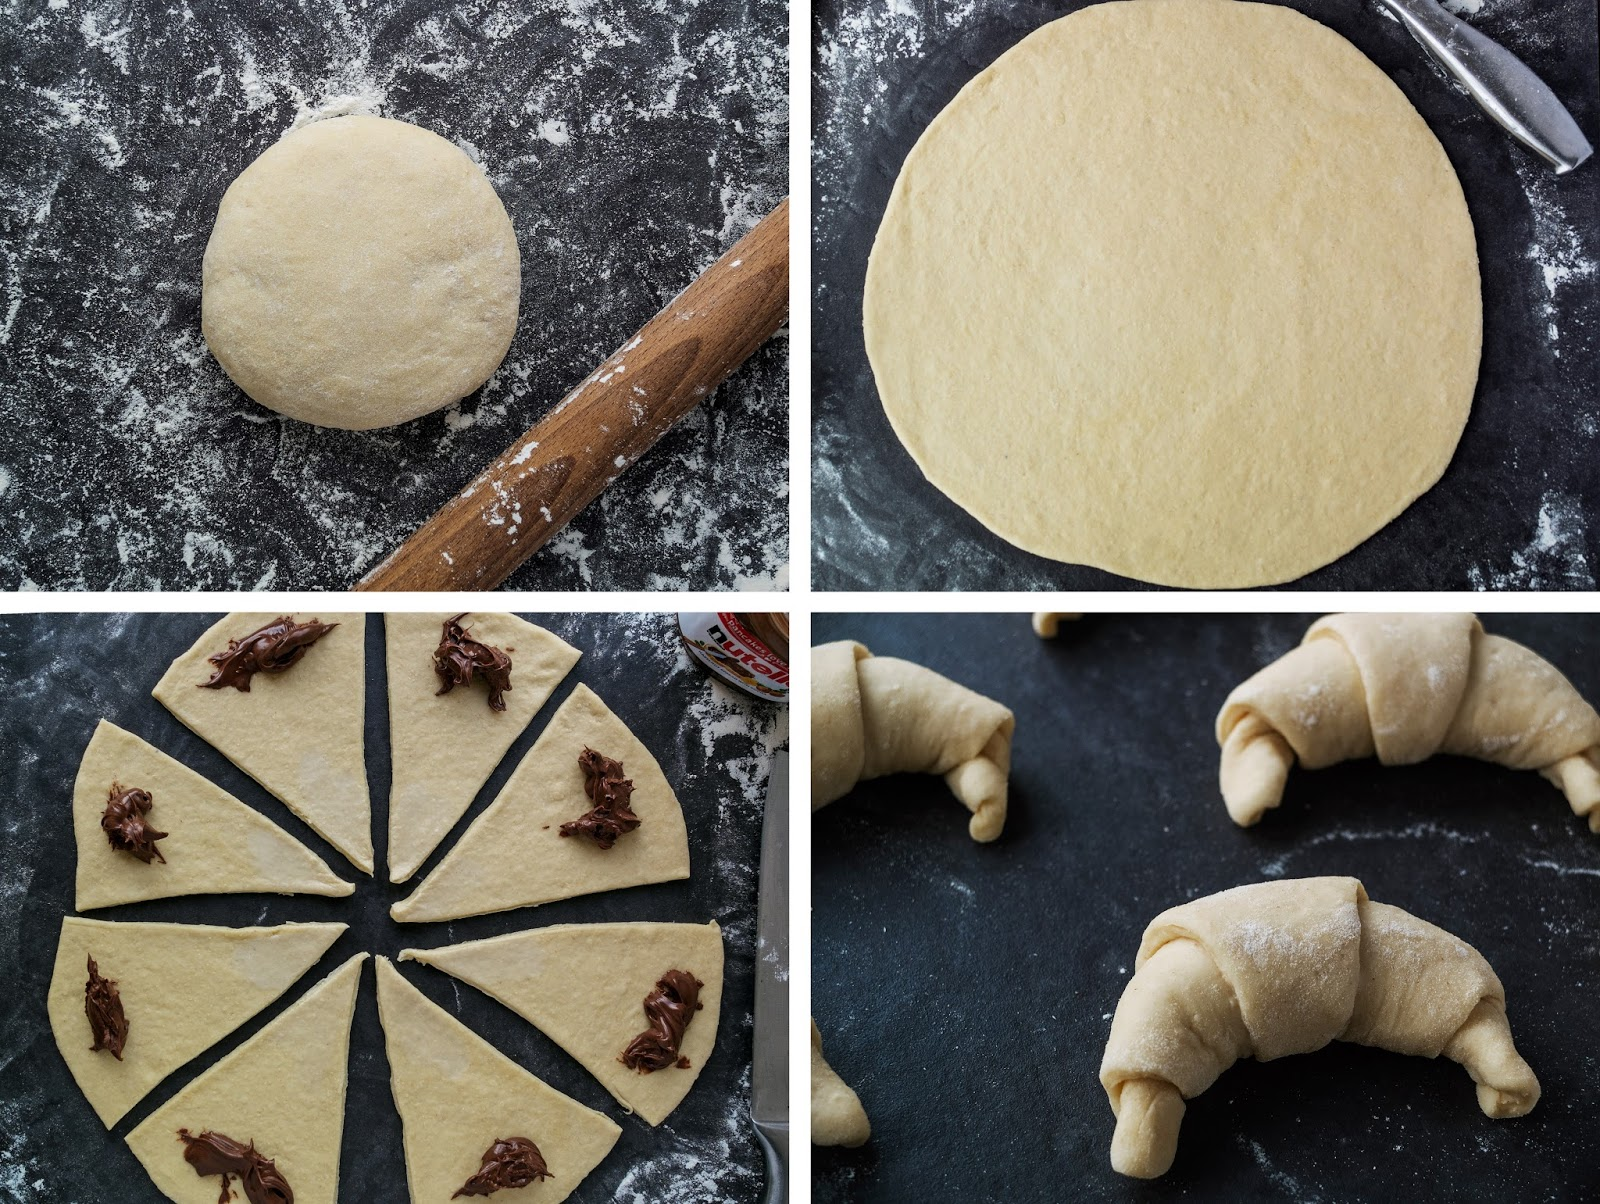 Step by step photos to making a crescent filled with Nutella.